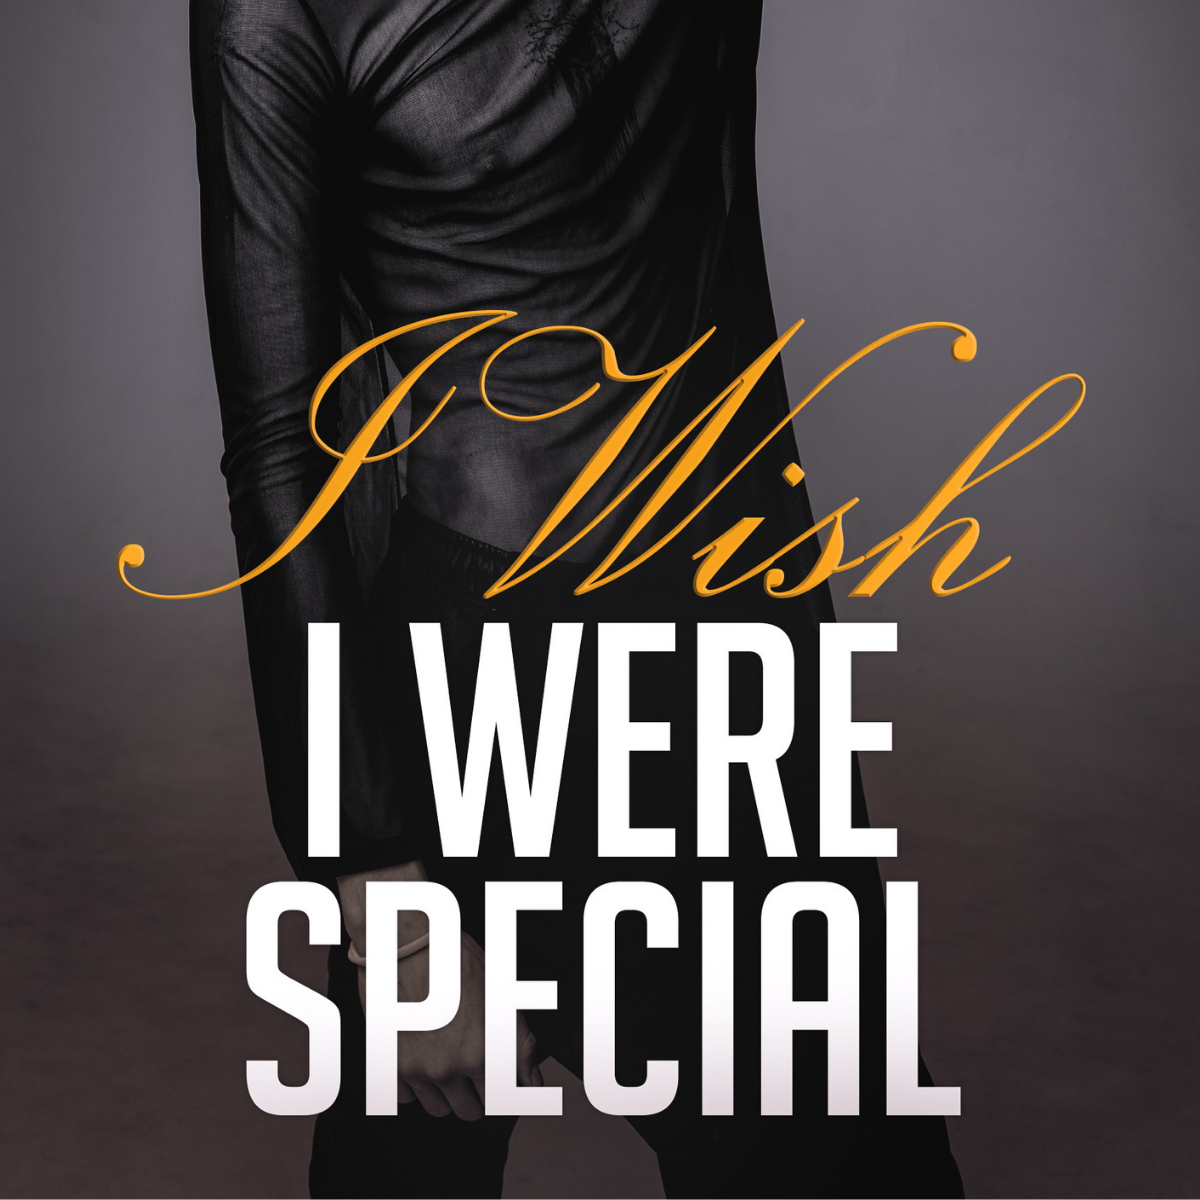 I Wish I Were Special by Julia McBryant